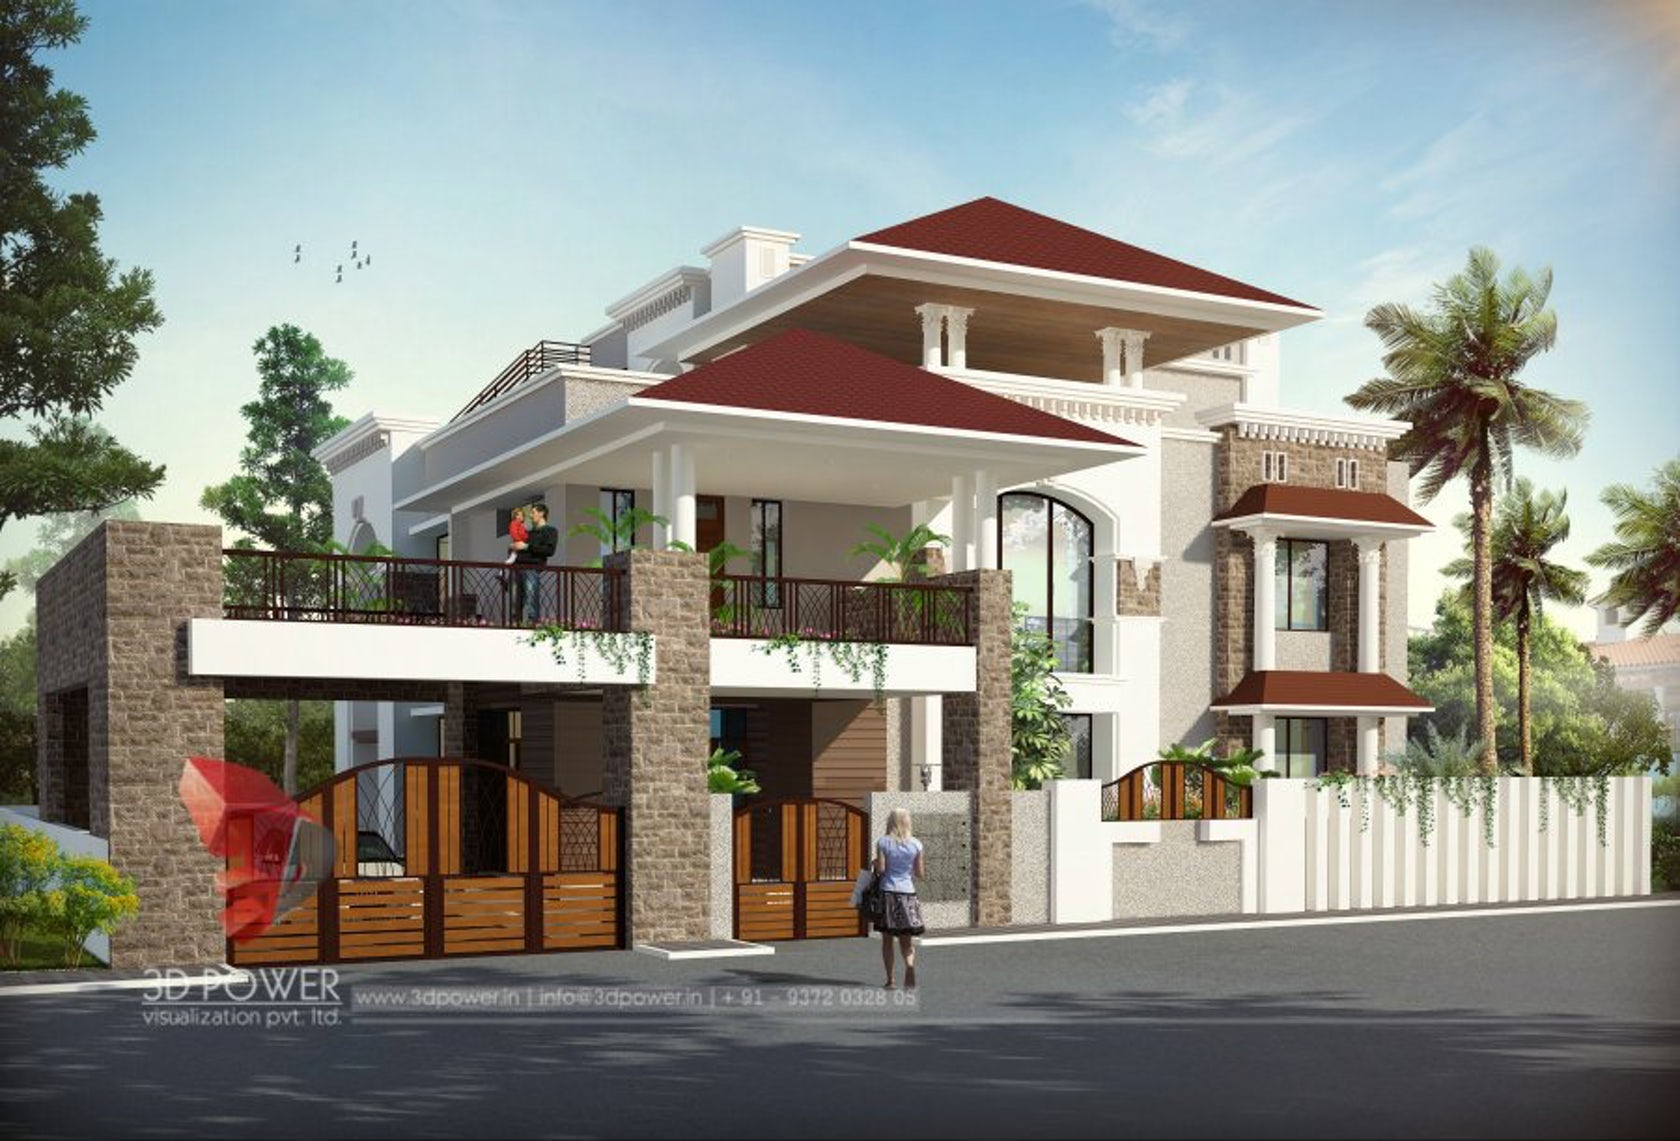 3d modern bungalow exterior day night rendering for Home design visualizer